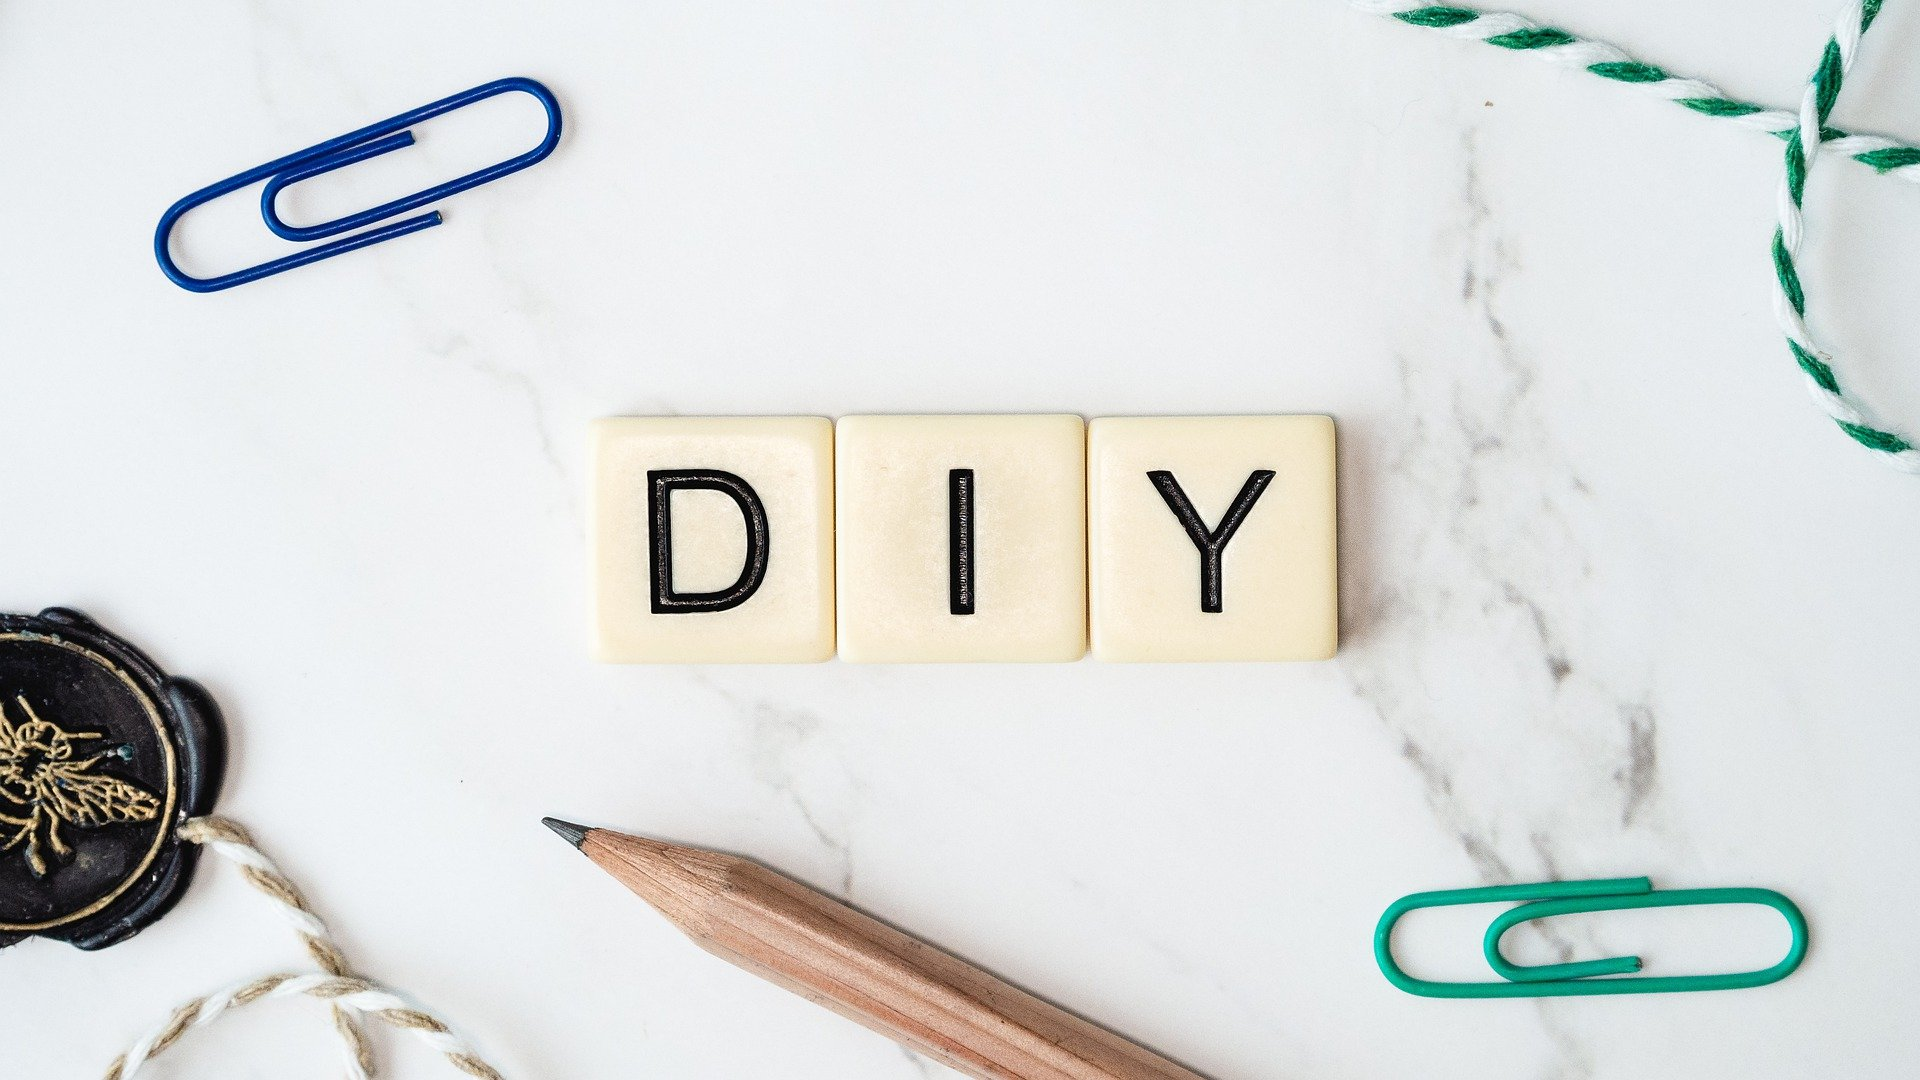 Useful step by step DIY guide to digital marketing for startups and small businesses | consultusnow